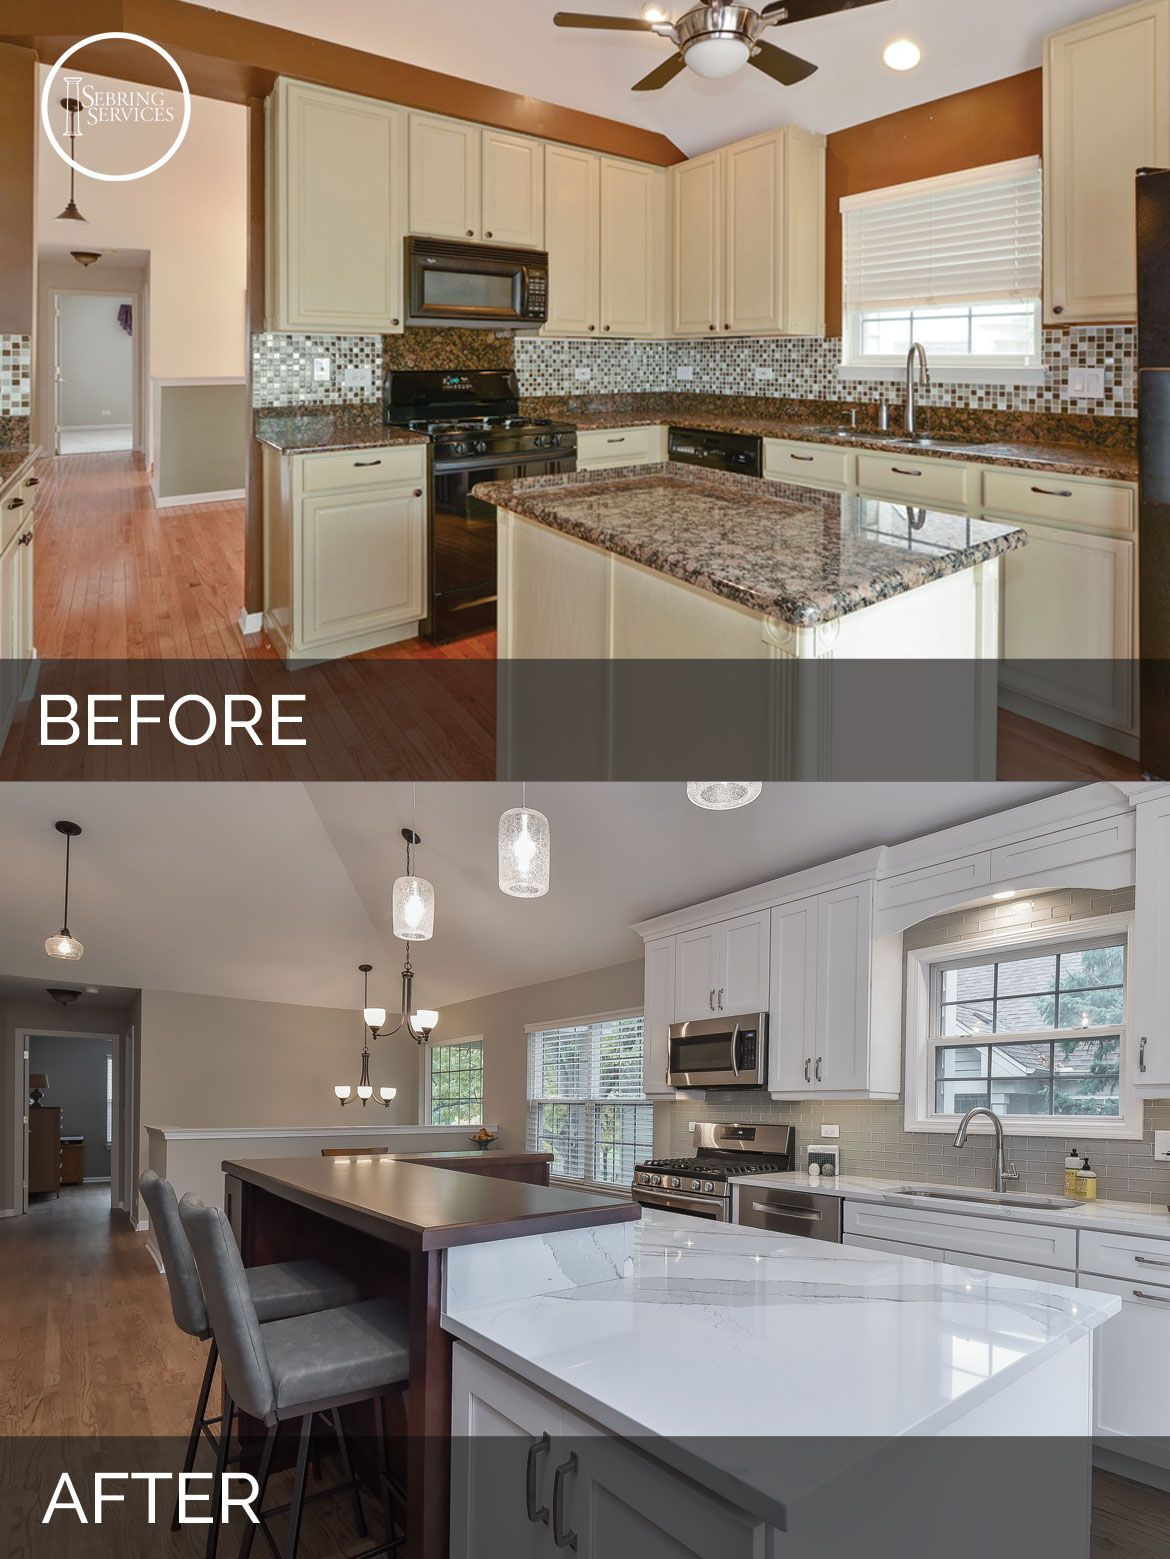 Bill Carol S Kitchen Before After Pictures Before After Kitchen Kitchen Remodel Layout Cheap Kitchen Remodel